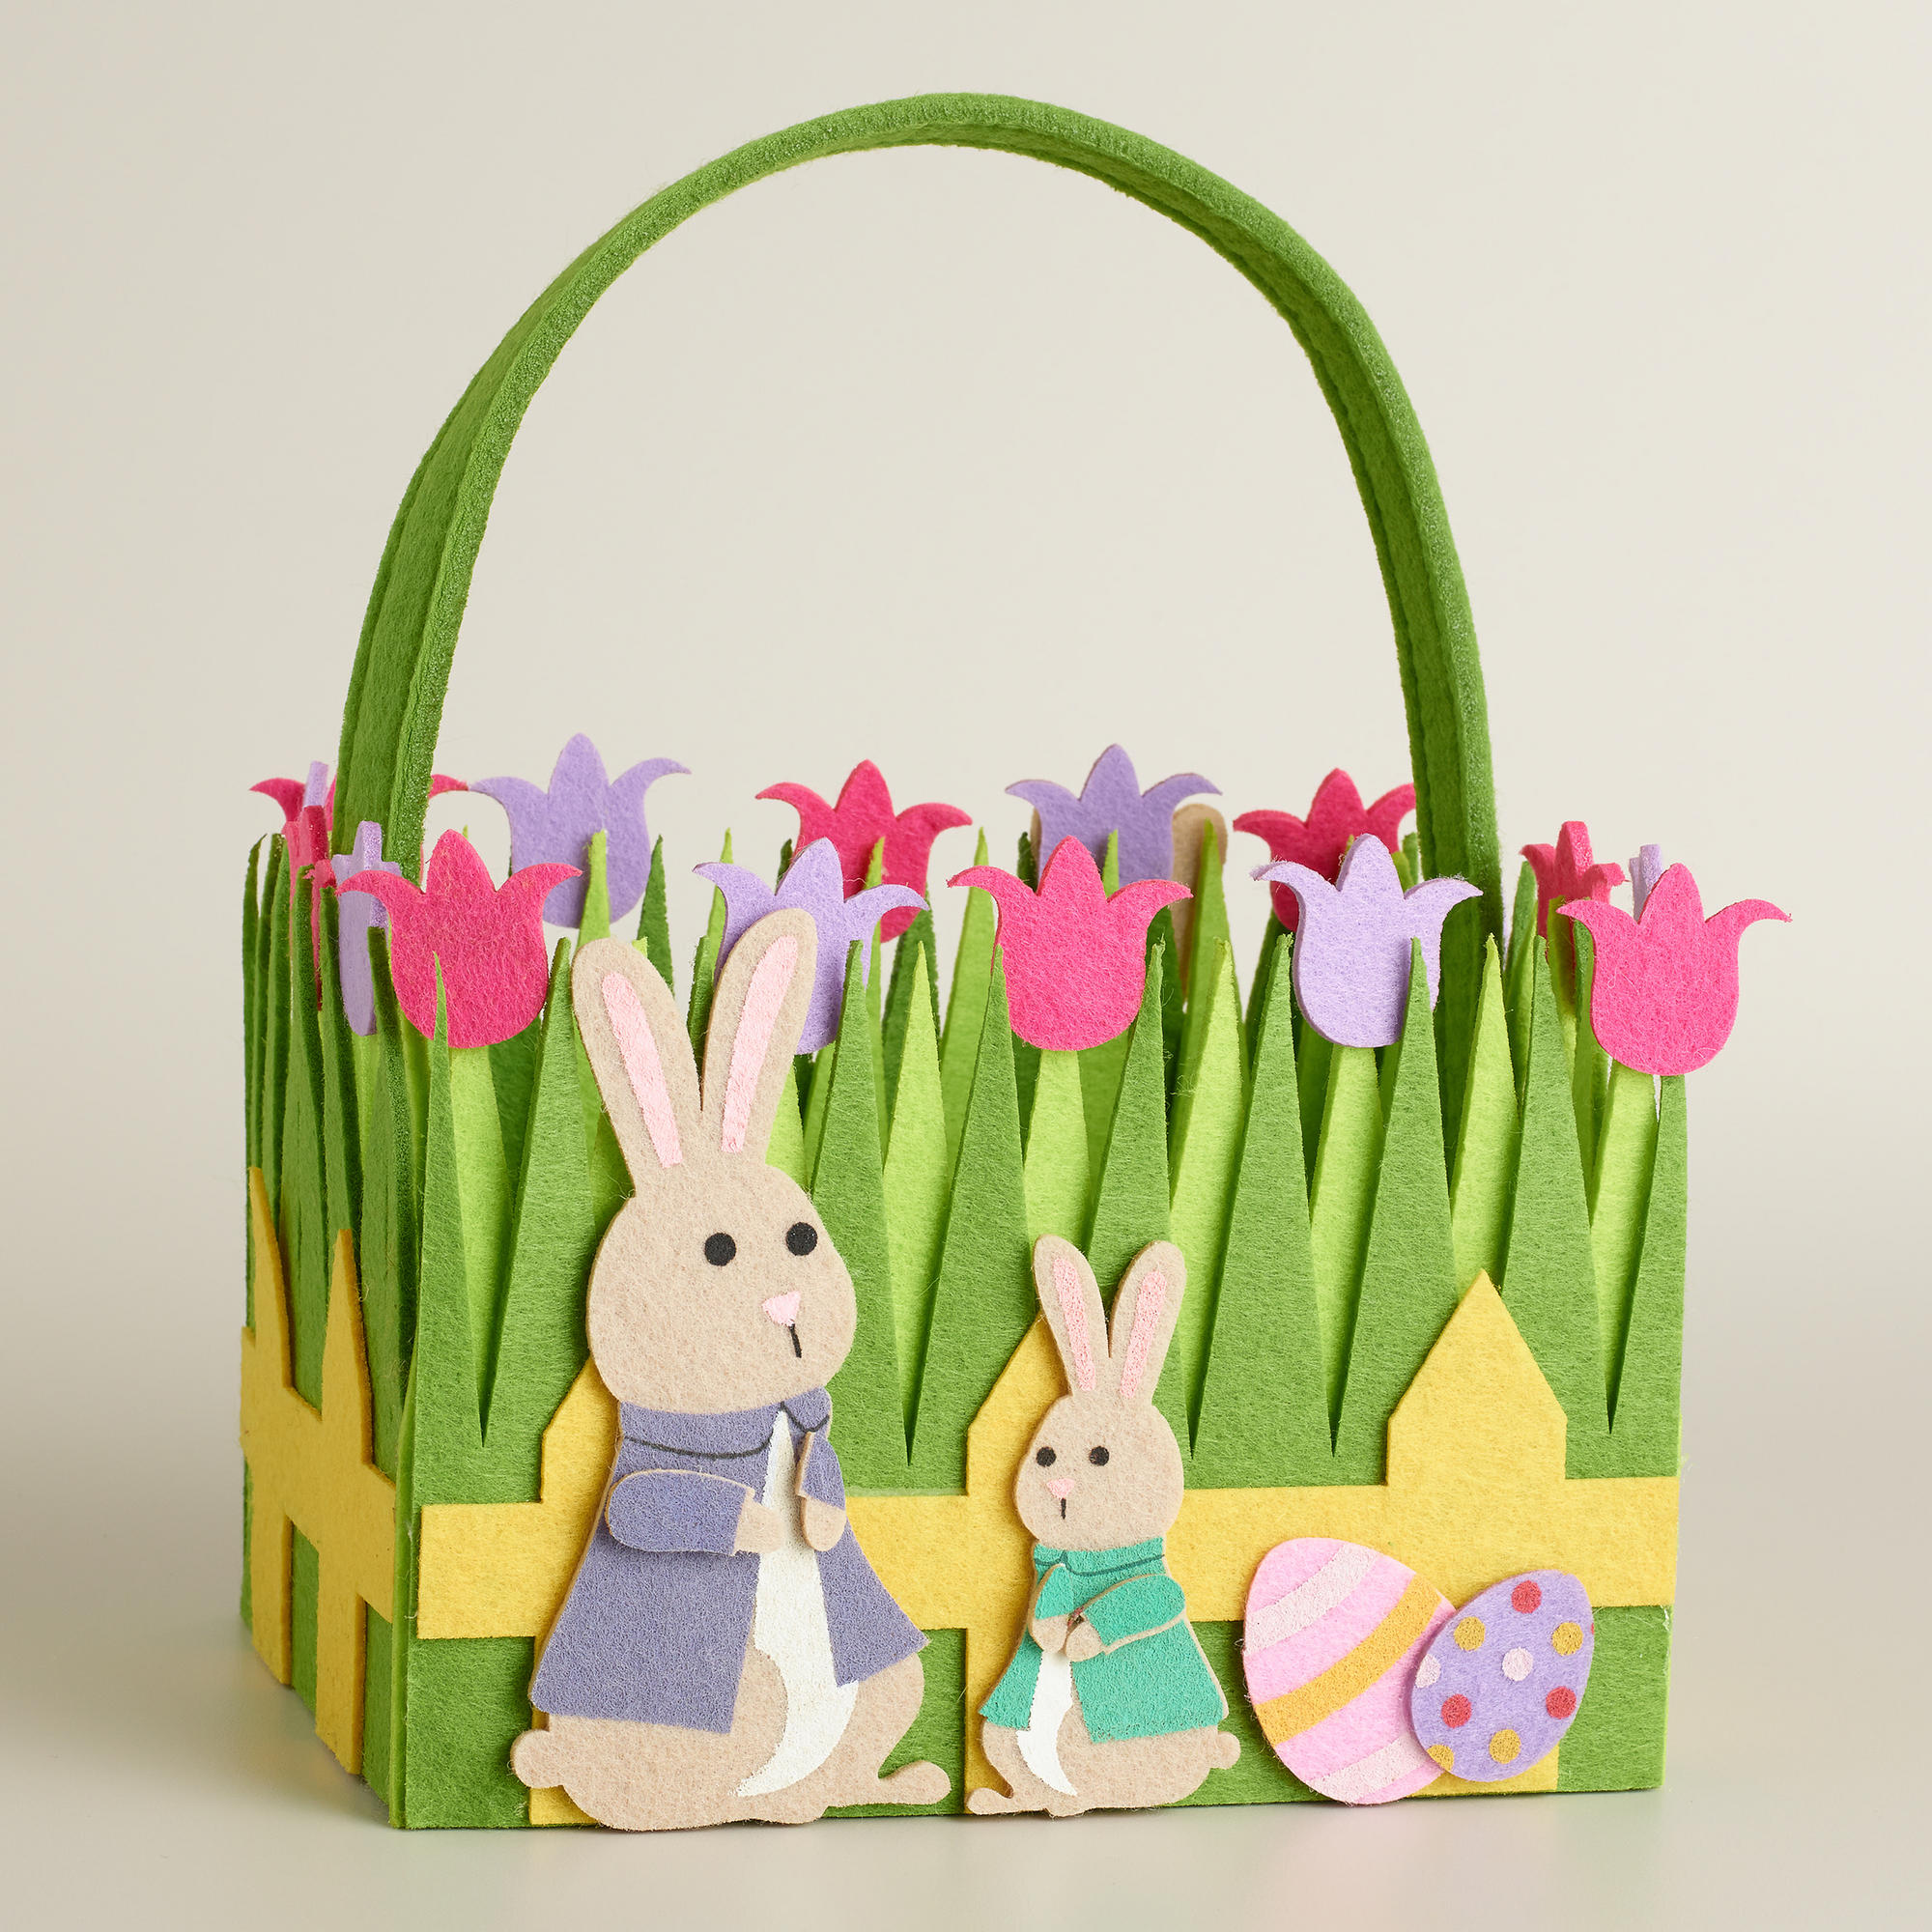 2000x2000 Adorable Diy Easter Basket Craft With Lovely Flowers And Green